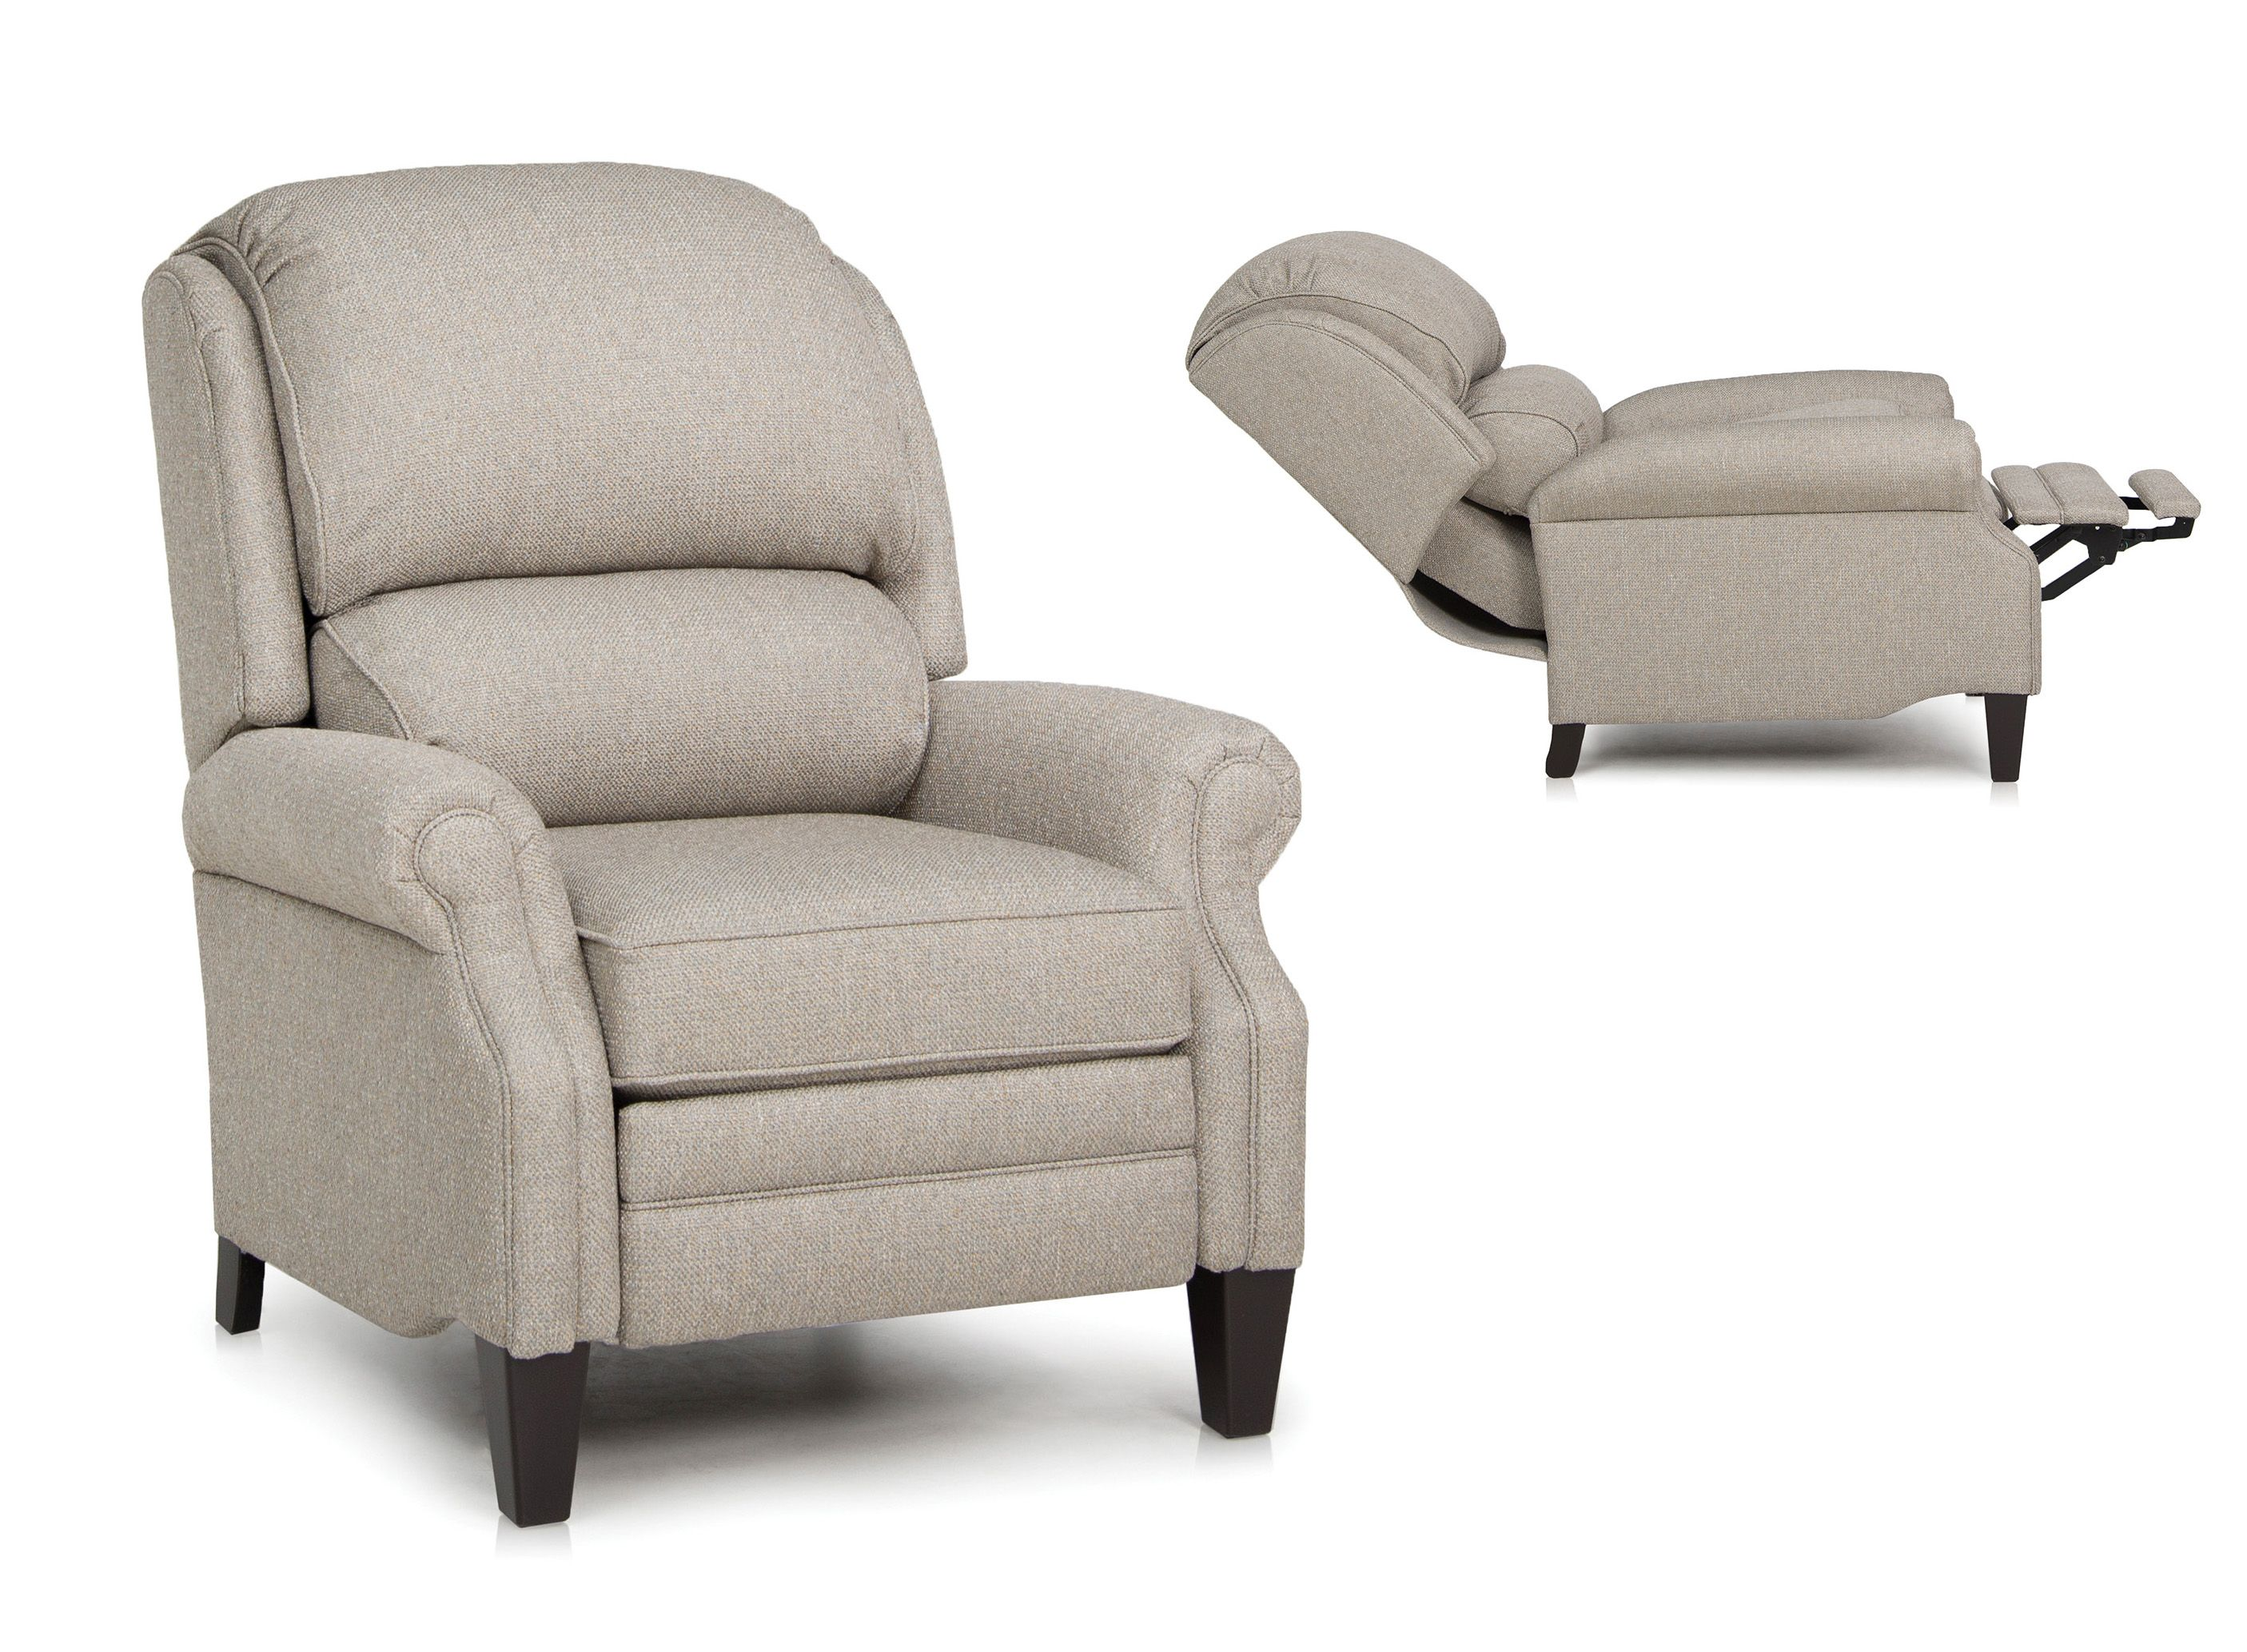 Smith Brothers Pressback Recliner 710 With Images Smith Brothers Furniture Furniture Recliner